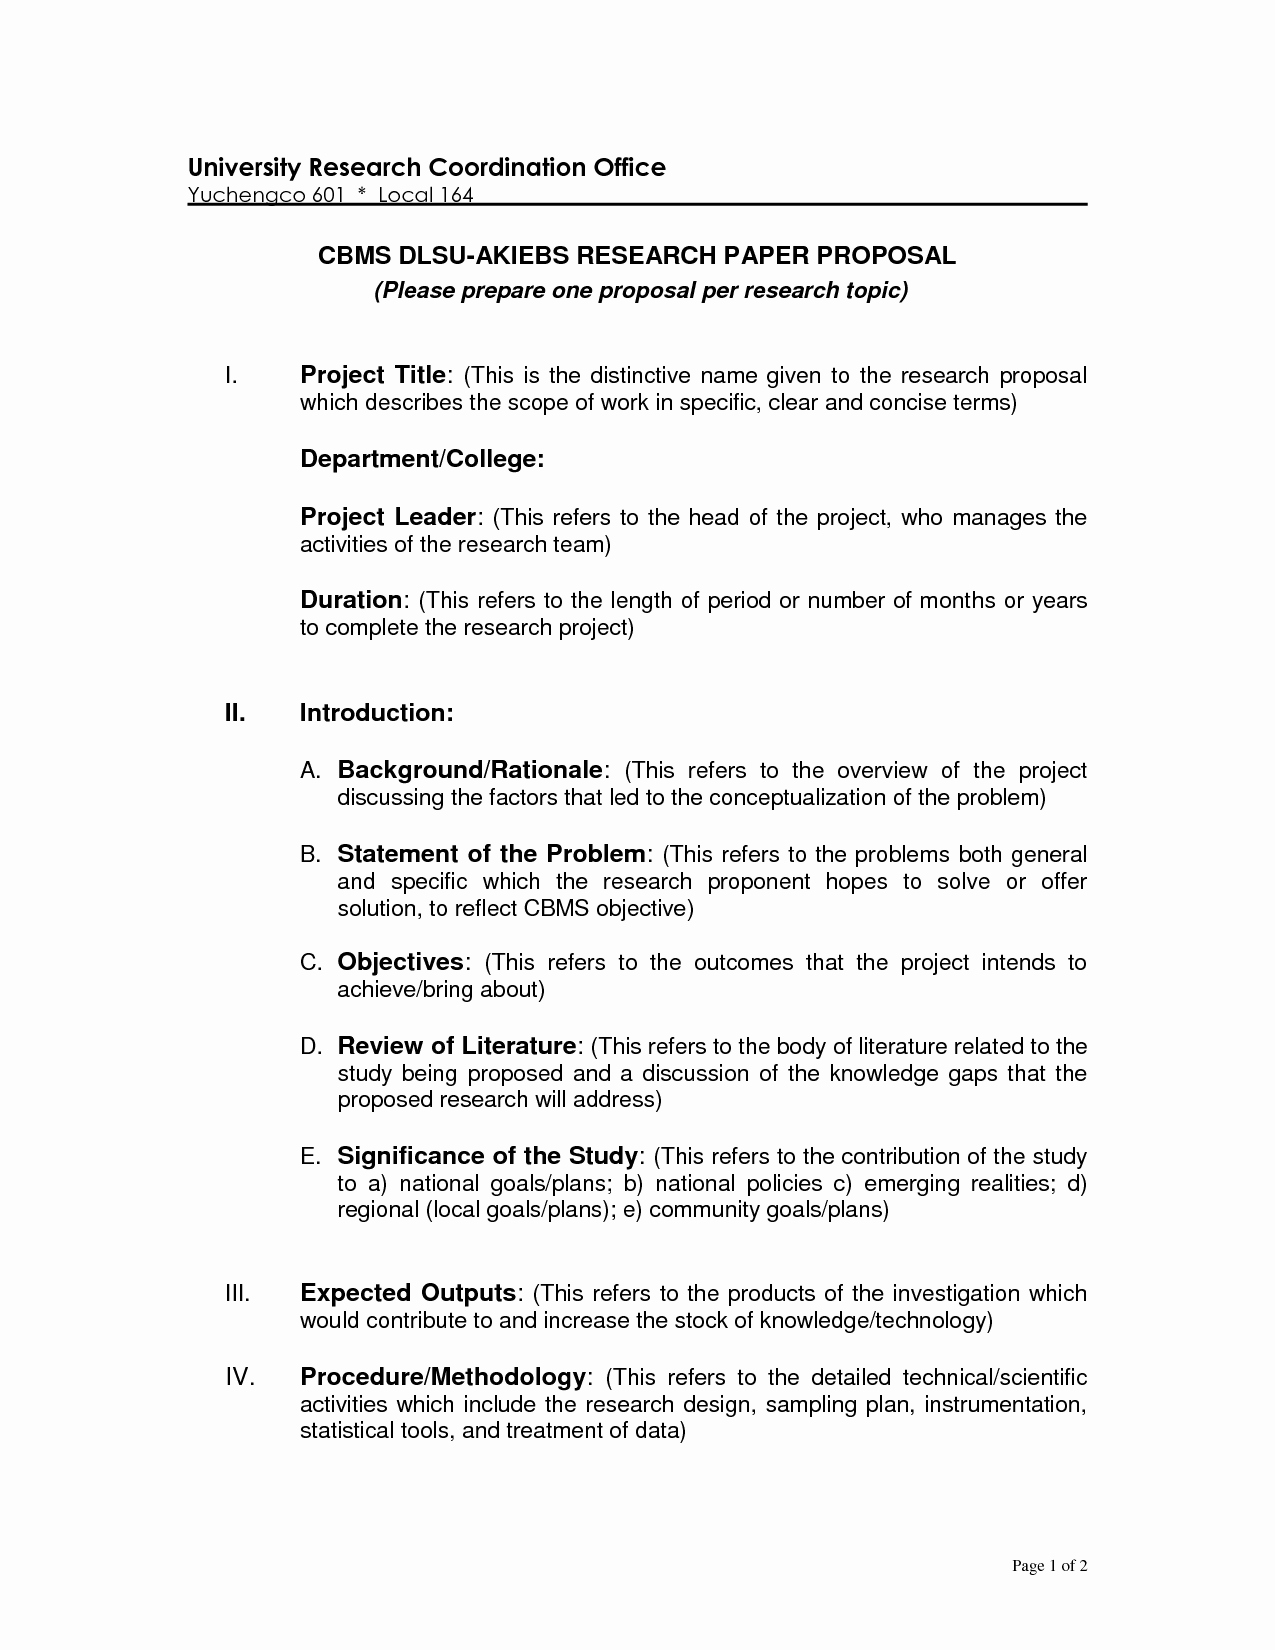 012 Research Paper Apa Proposal Sample Lovely Sarp Potanist Marvelous Style Example Full